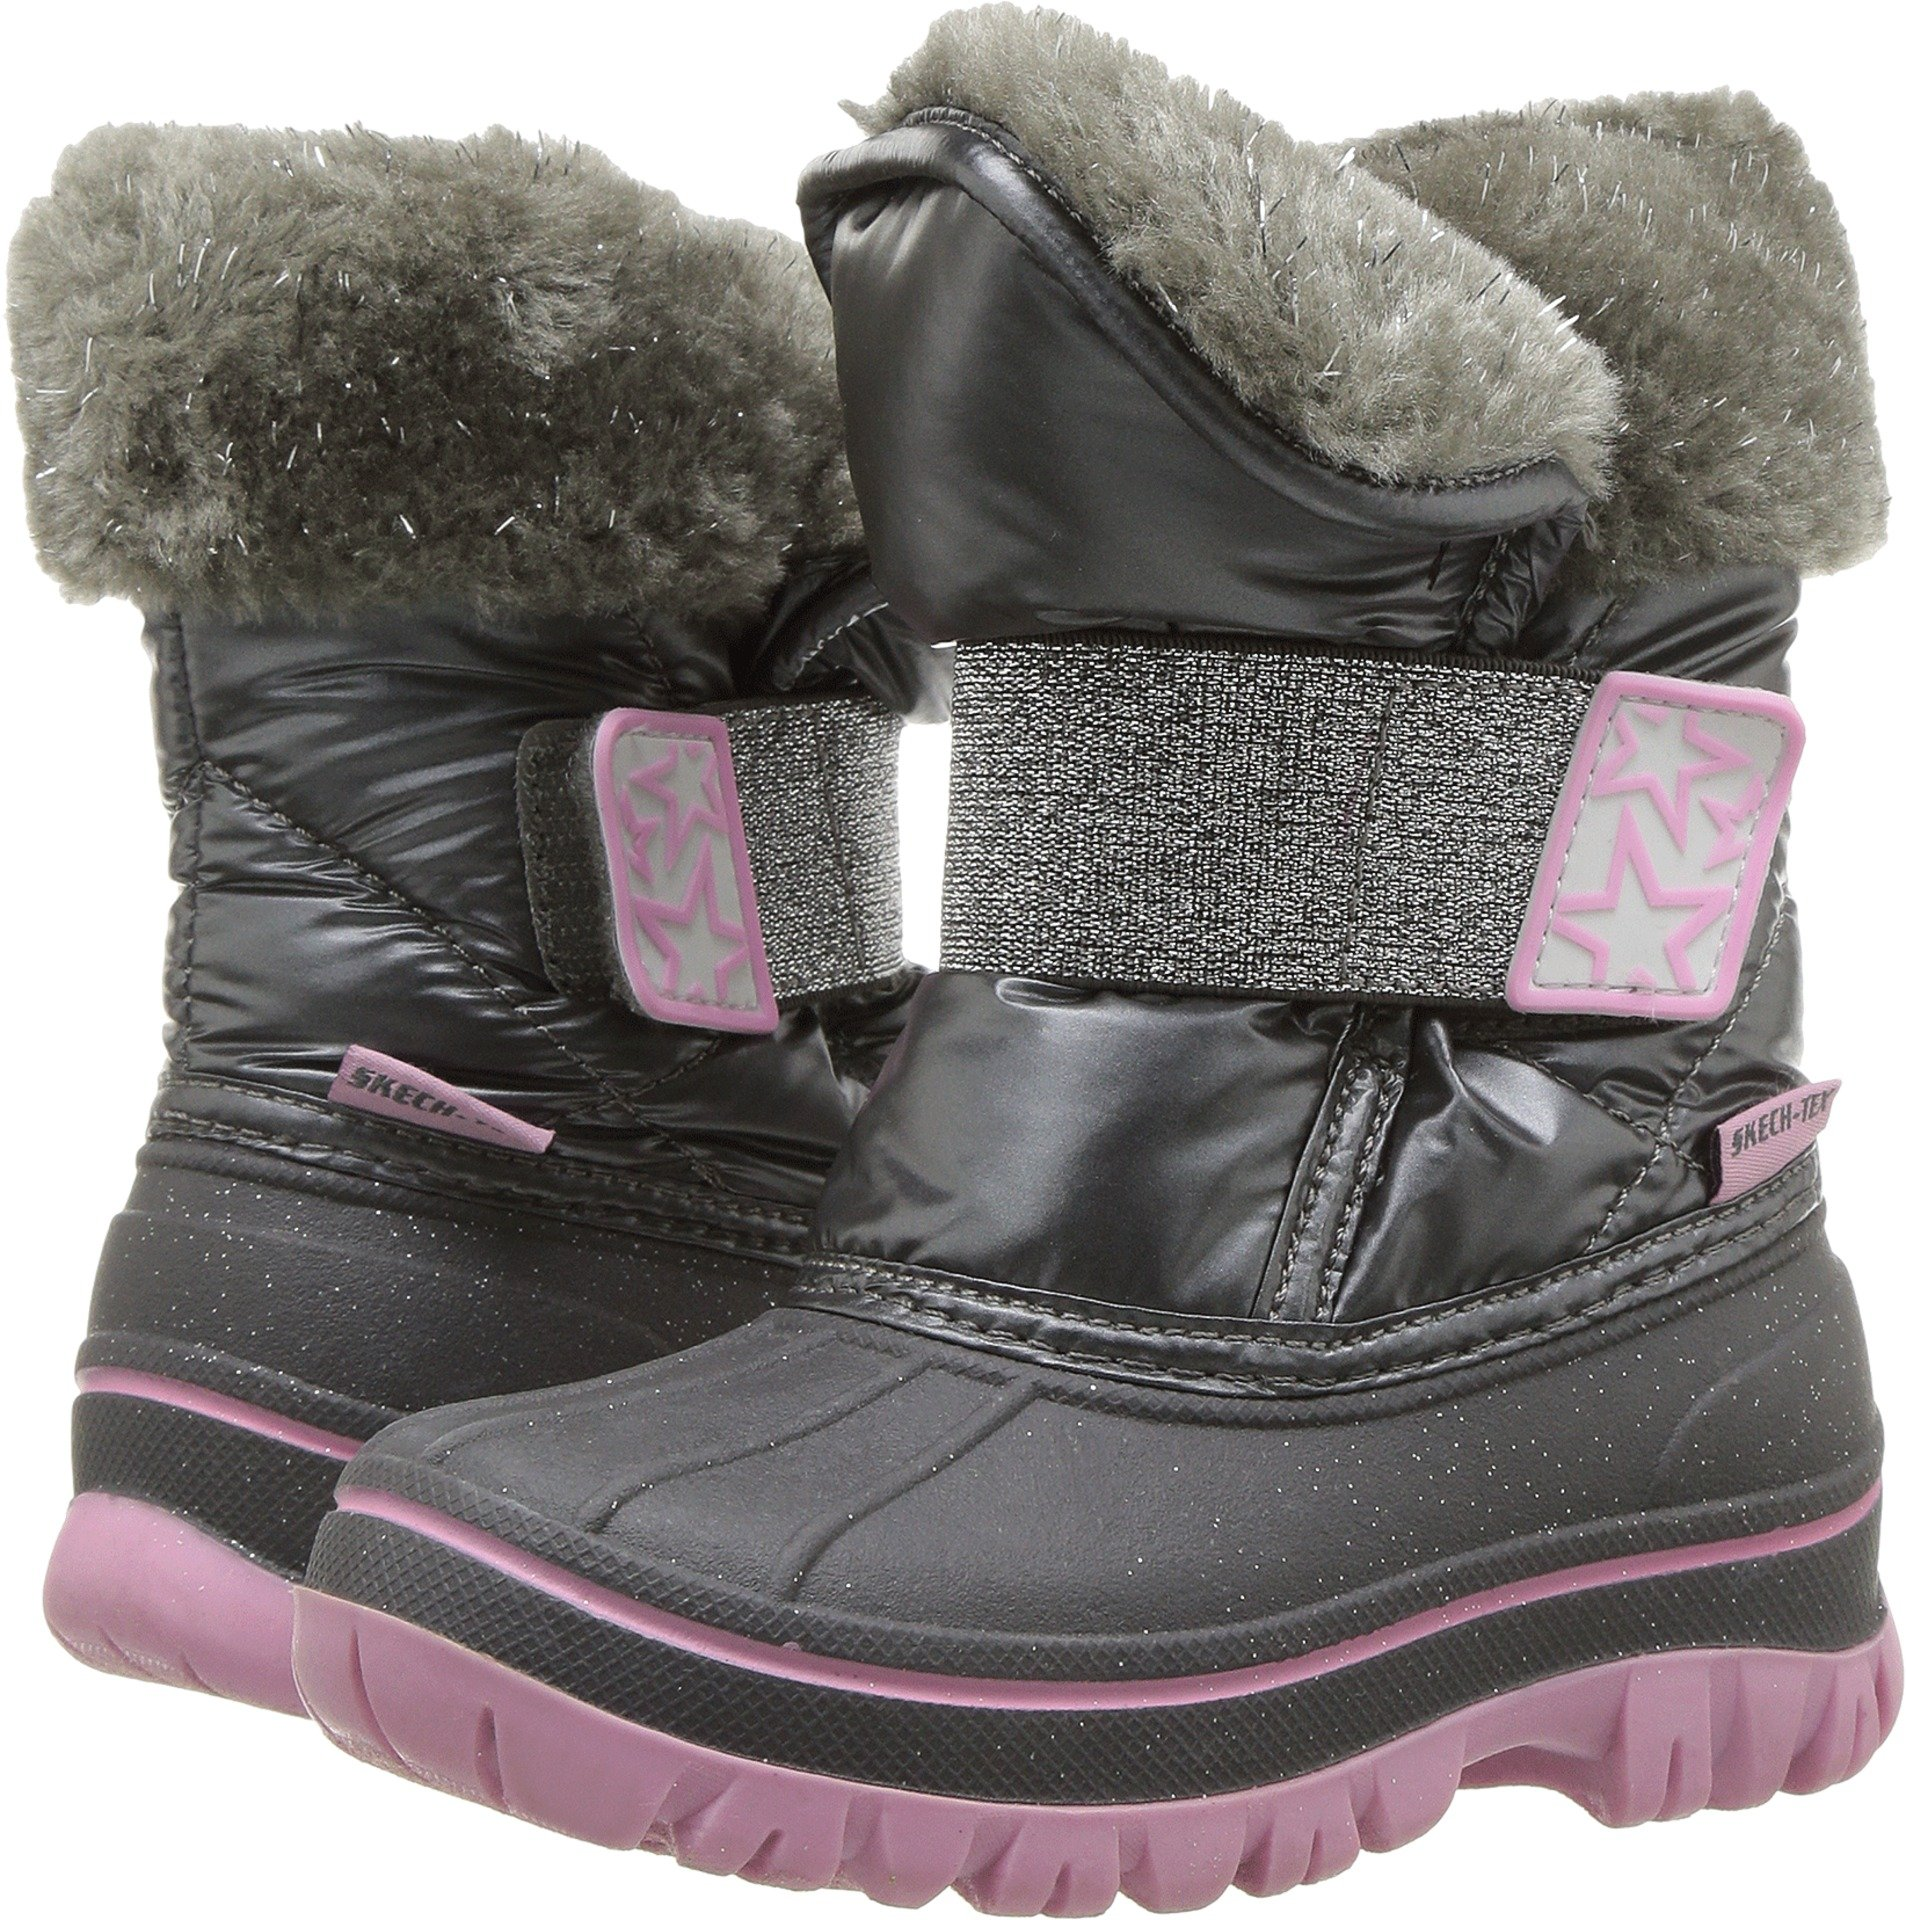 Skechers Kids Baby Girl's Lil Windom - Starry Sparkles 88879N (Toddler/Little Kid) Charcoal 8 M US Toddler